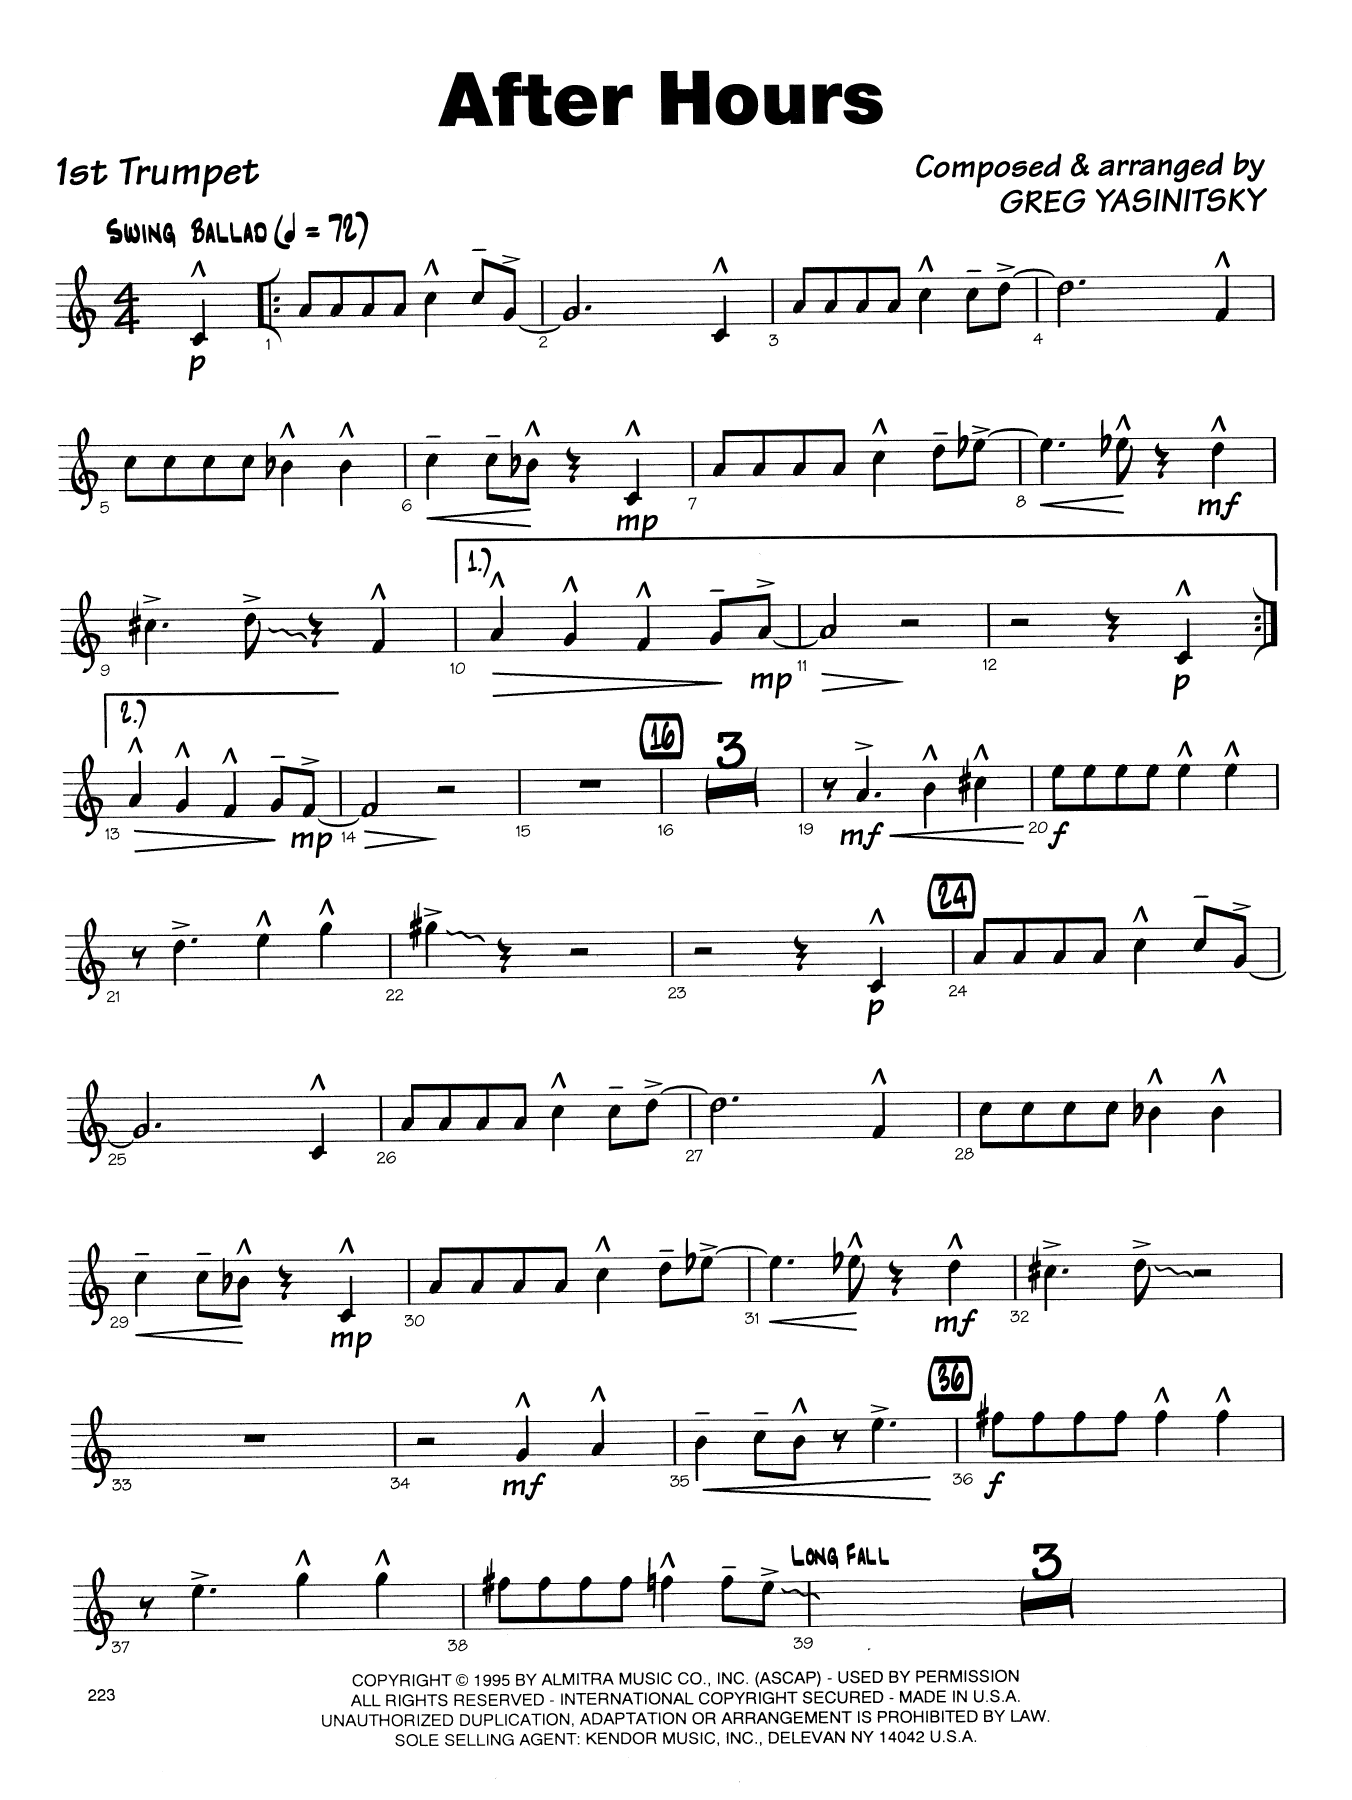 After Hours - 1st Bb Trumpet - Sheet Music to Download